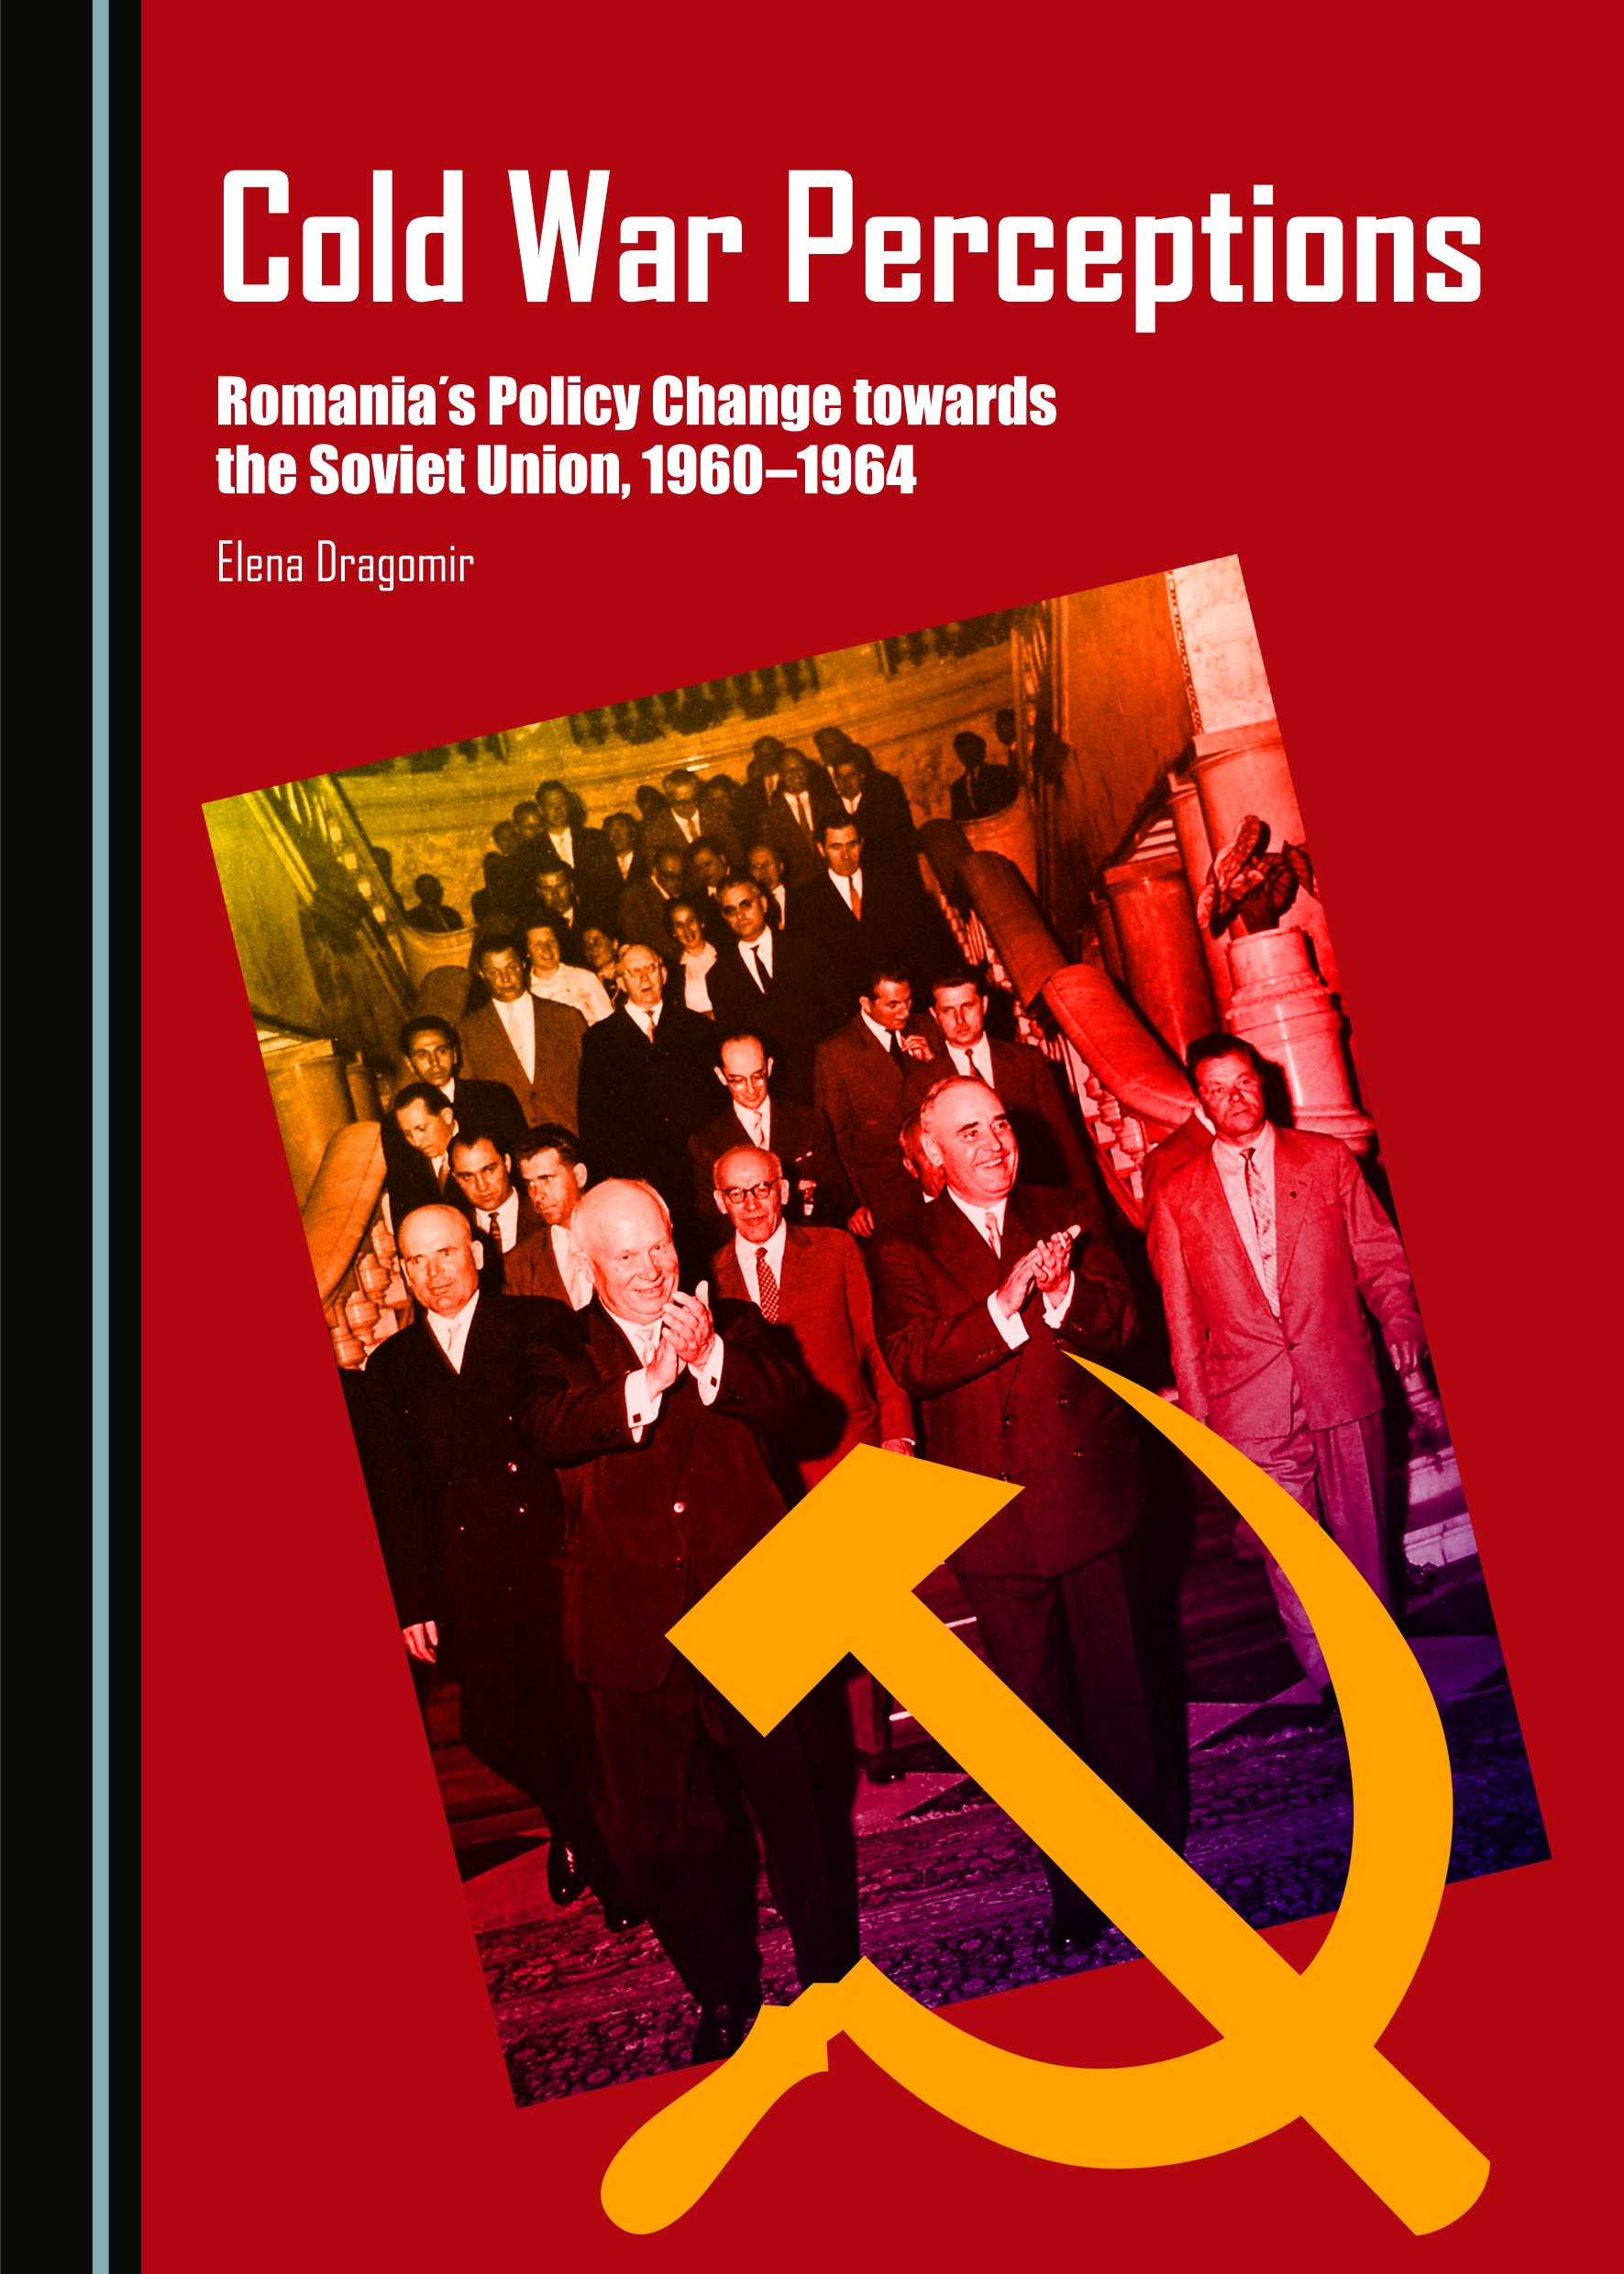 Cold War Perceptions: Romania's Policy Change towards the Soviet Union, 1960-1964